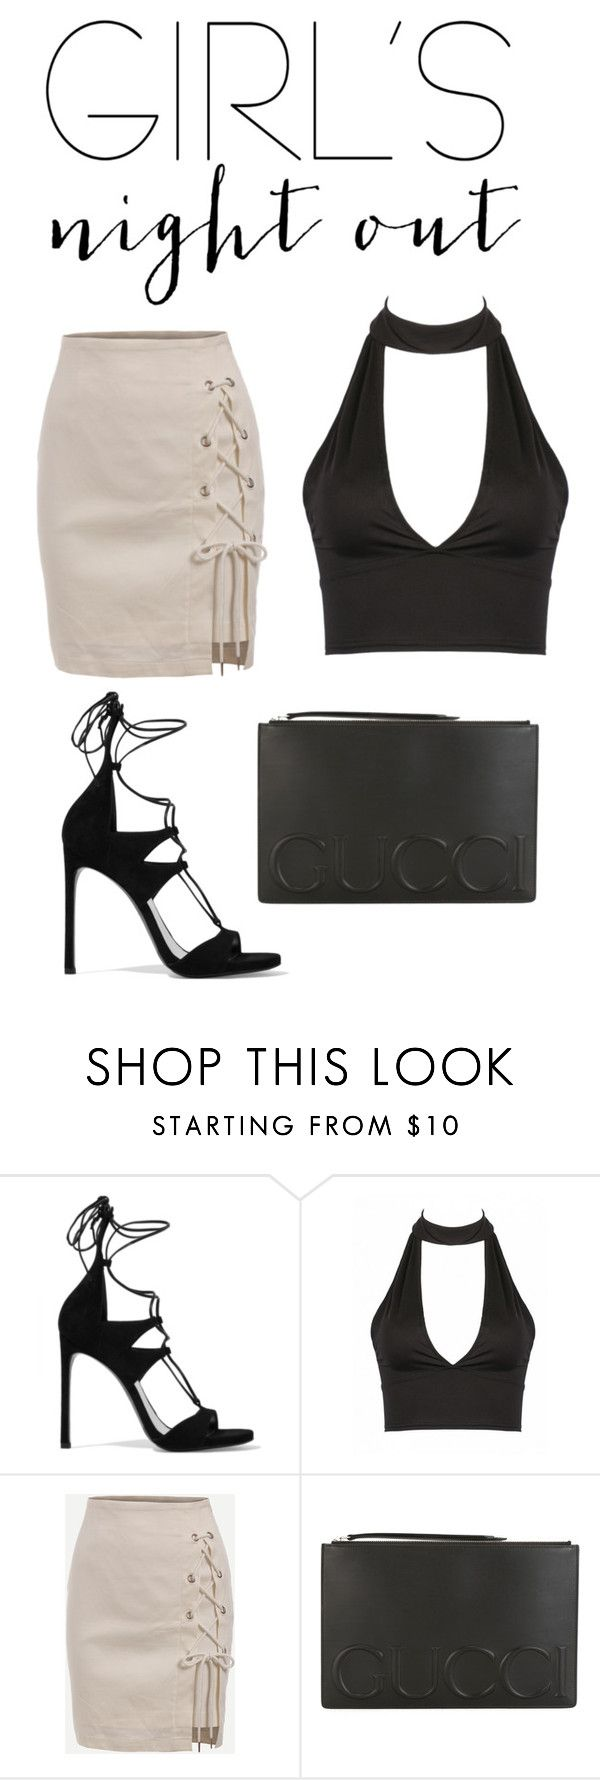 """""""basically"""" by valeria-ros ❤ liked on Polyvore featuring Stuart Weitzman, Gucci and girlsnightout"""